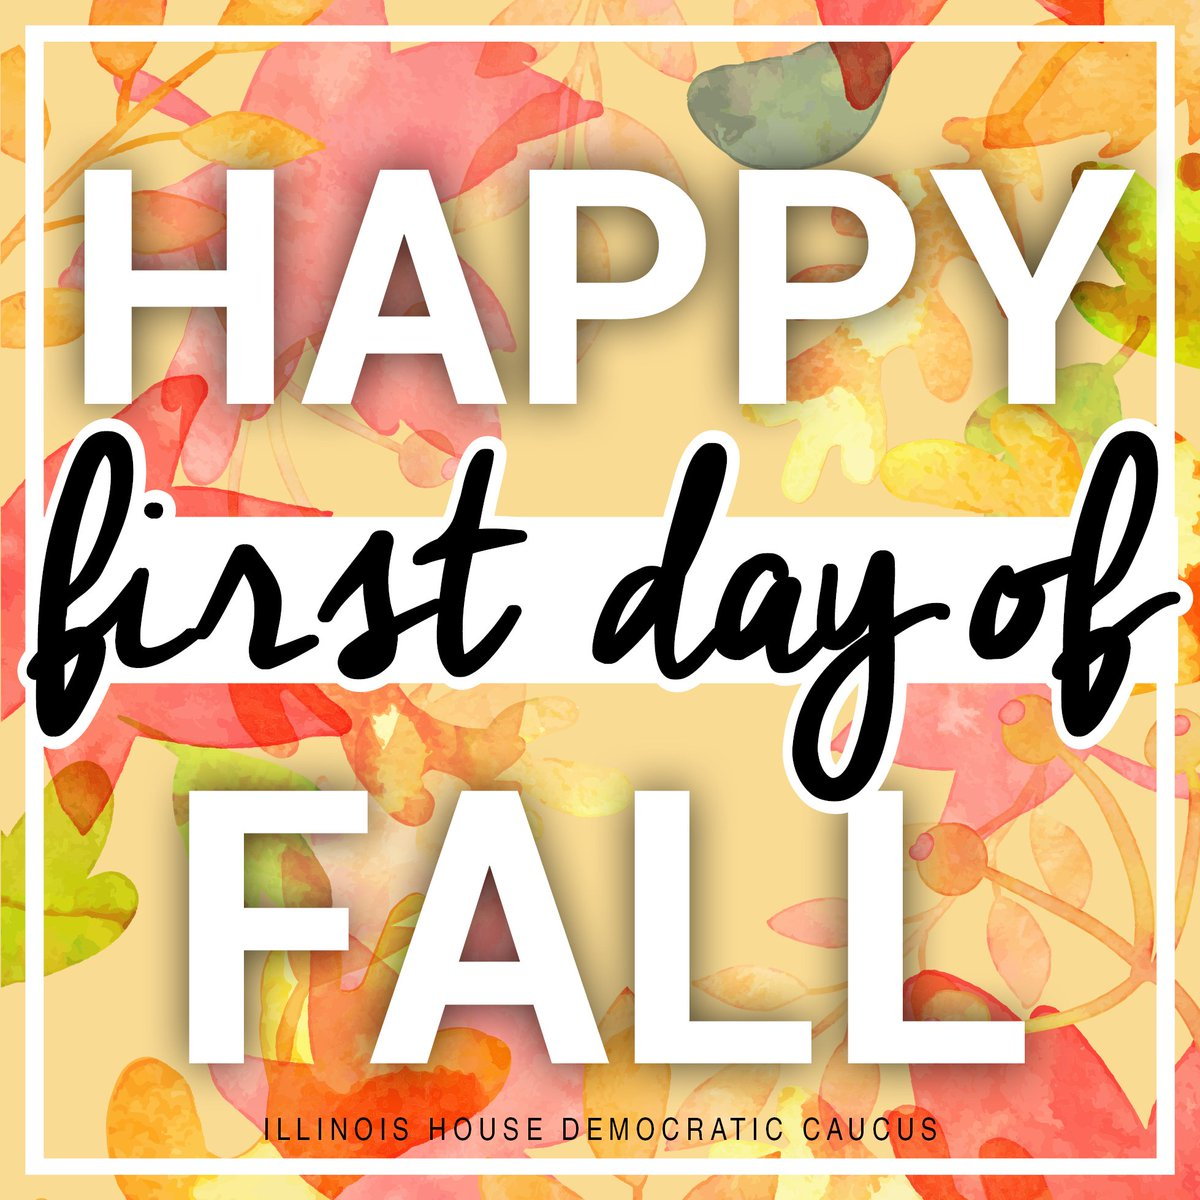 test Twitter Media - Happy #FirstDayofFall! Be sure to check out these great places throughout the state to enjoy the fall colors: https://t.co/n896S2omH5 https://t.co/ktghfMWwMT